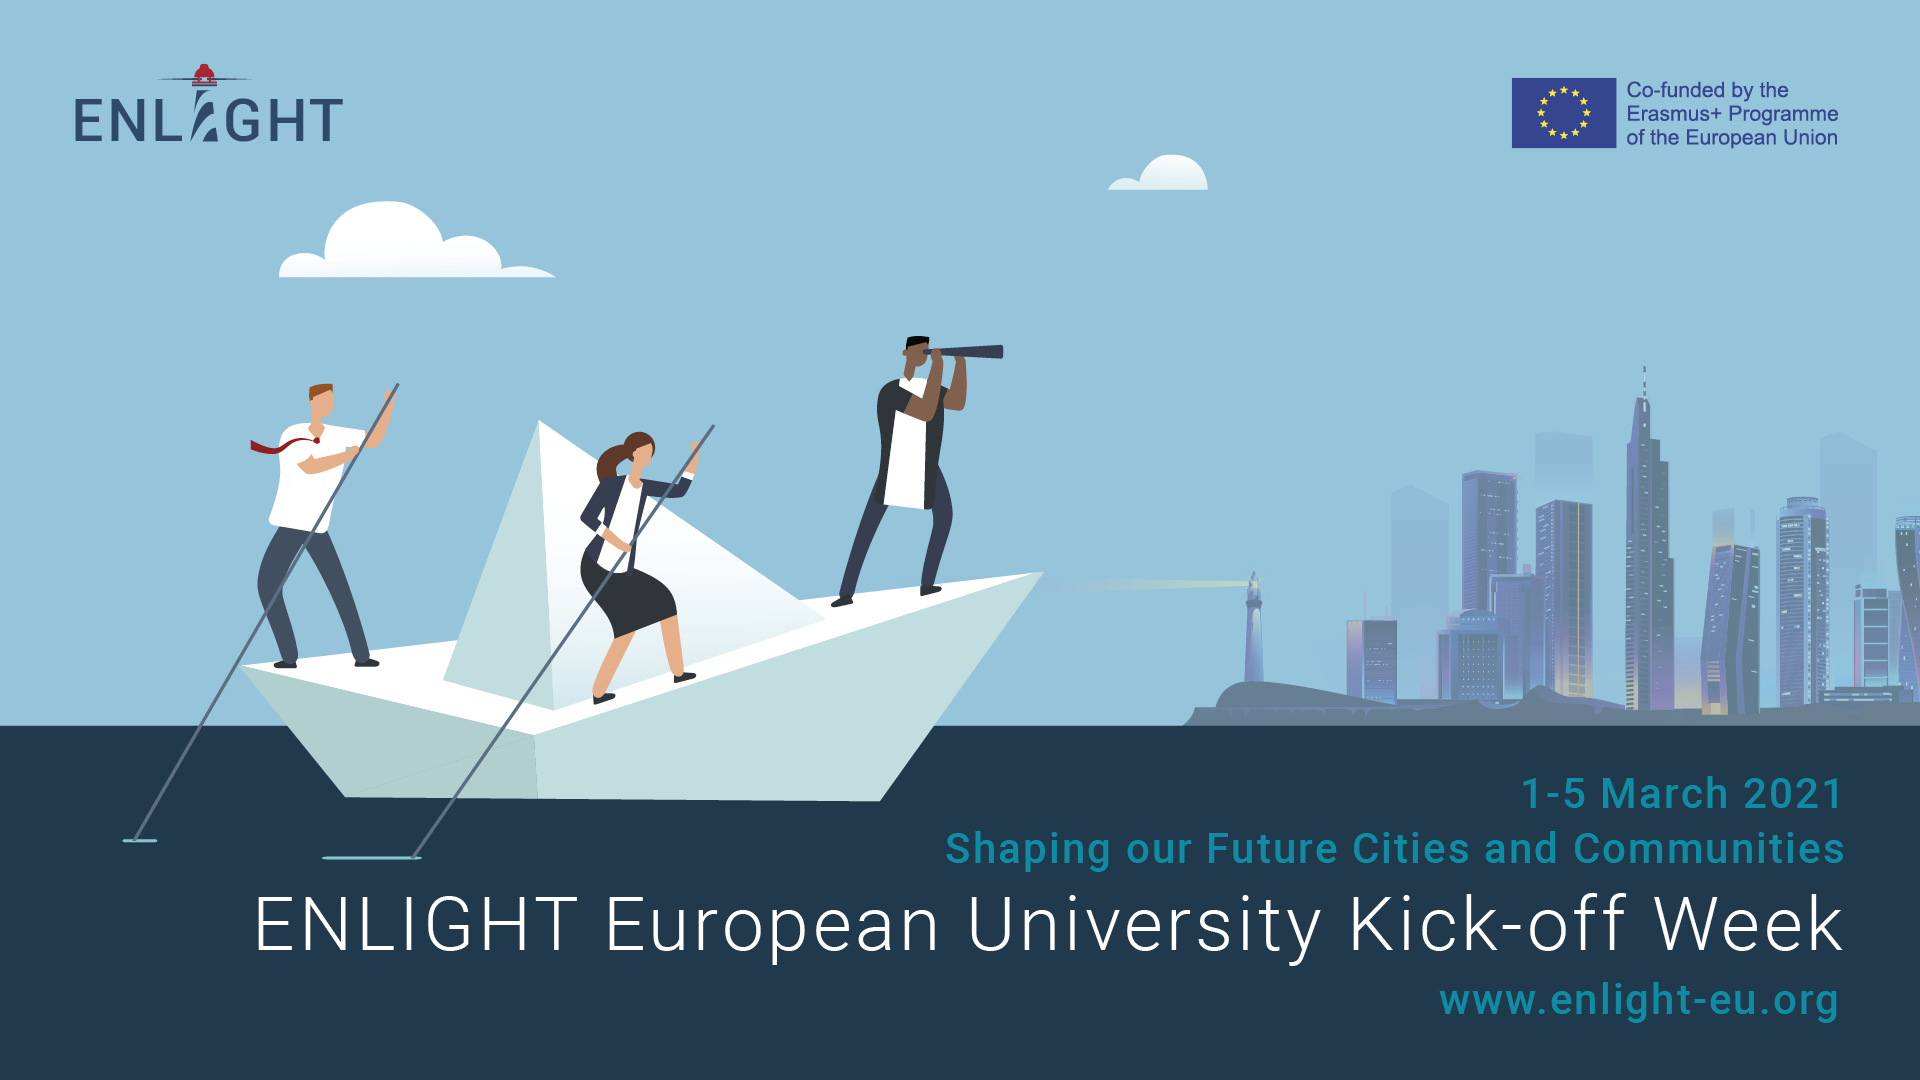 Programme ENLIGHT Kick-off week (1-5 March 2021): register now!